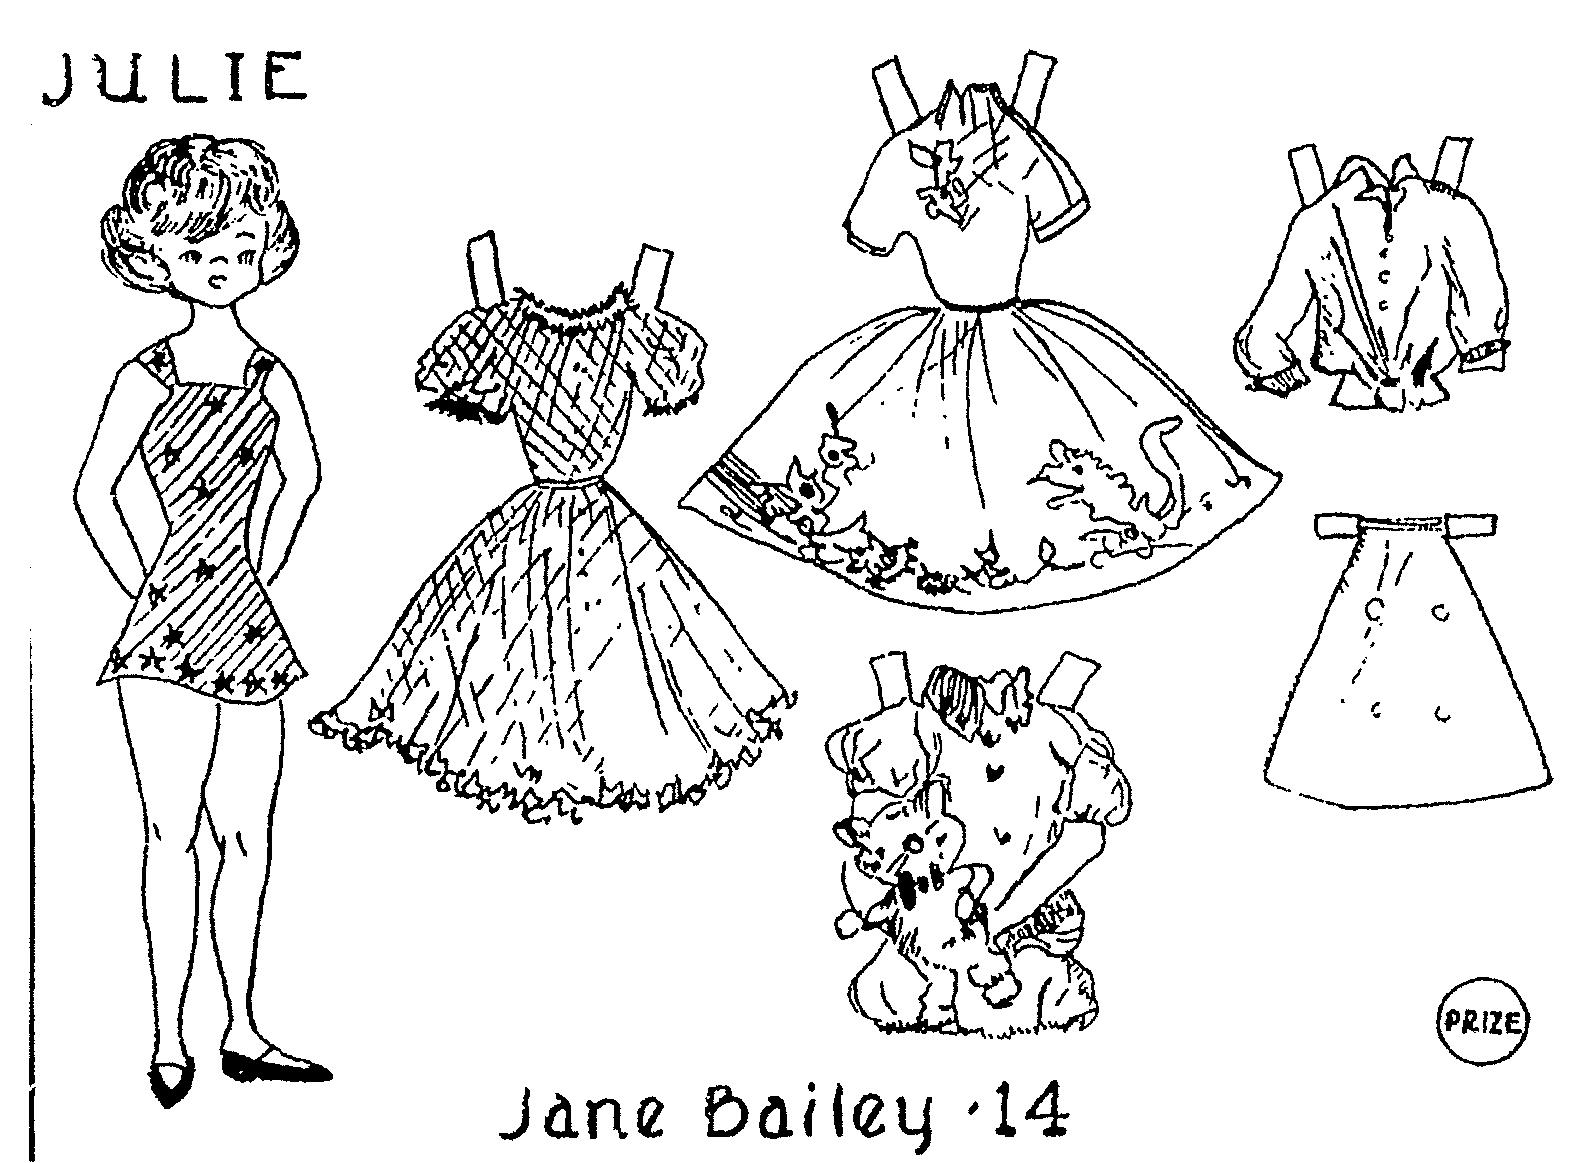 aunt elsie paper doll coloring contest 1960 1961 - Paper Doll Coloring Pages